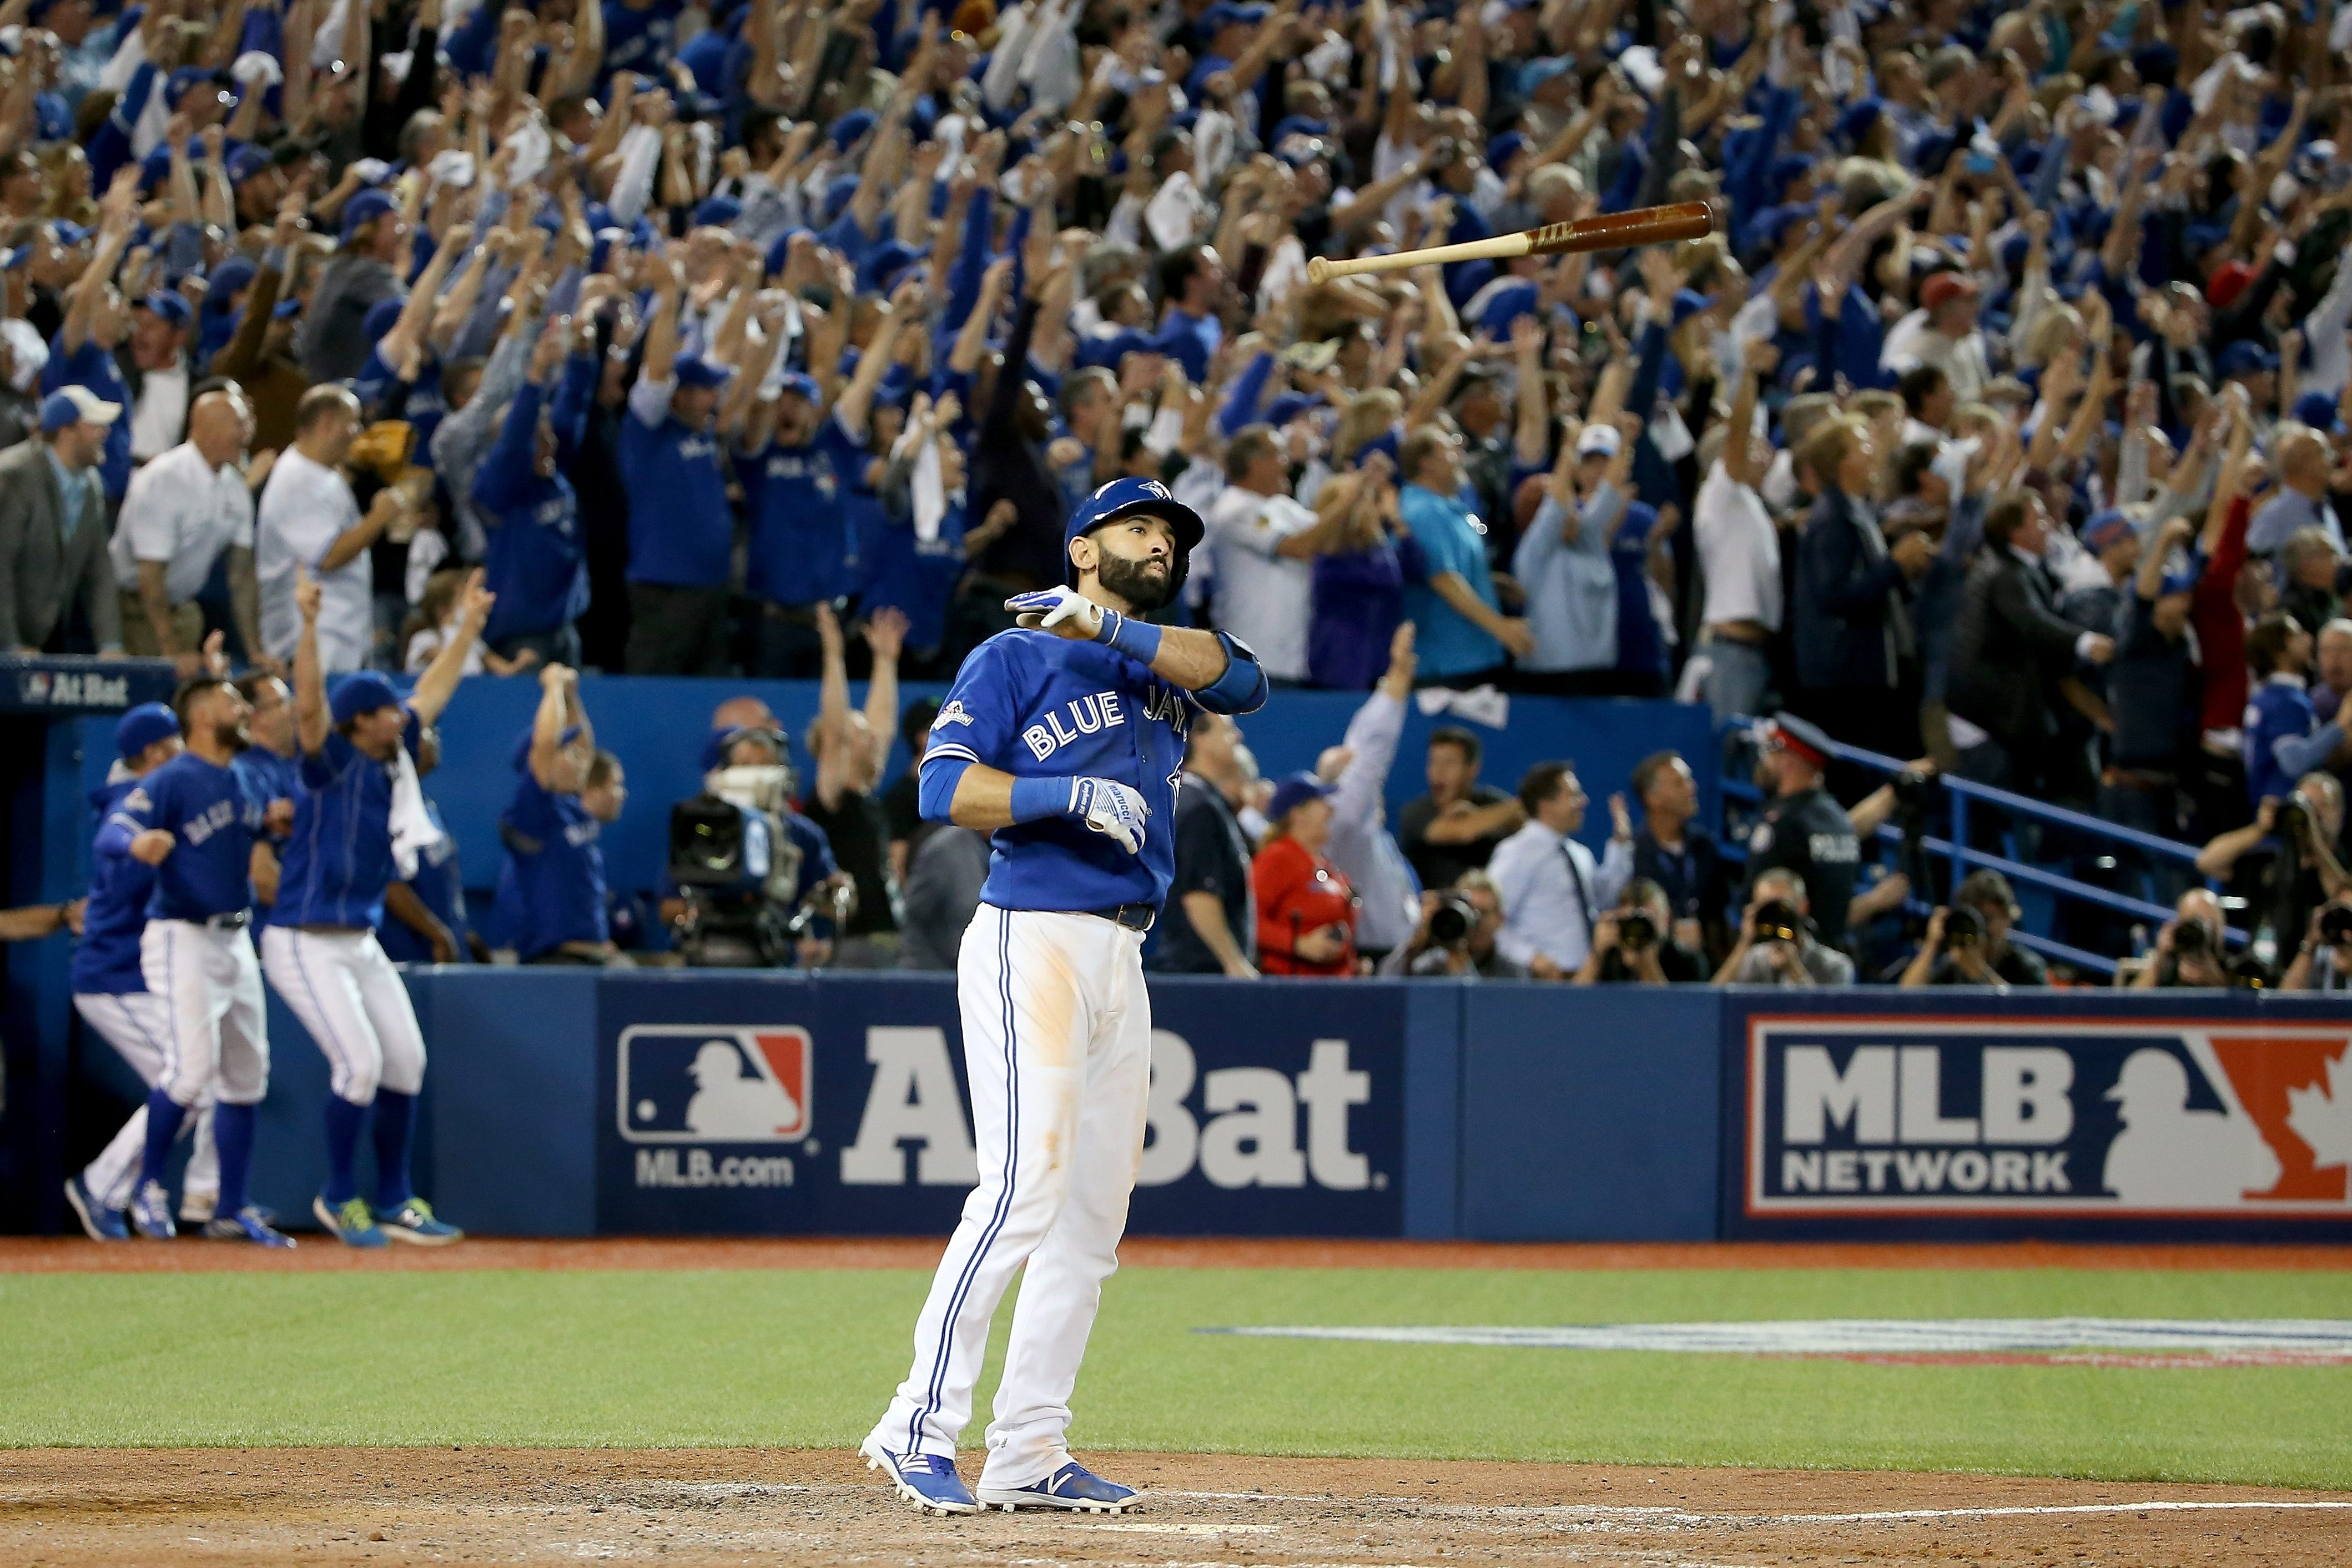 Jose Bautista of the Toronto Blue Jays with his now-famous bat flip after he hit a three-run home run in the seventh inning against the Texas Rangers in Game Five of the 2015 American League Division Series (Getty Images).